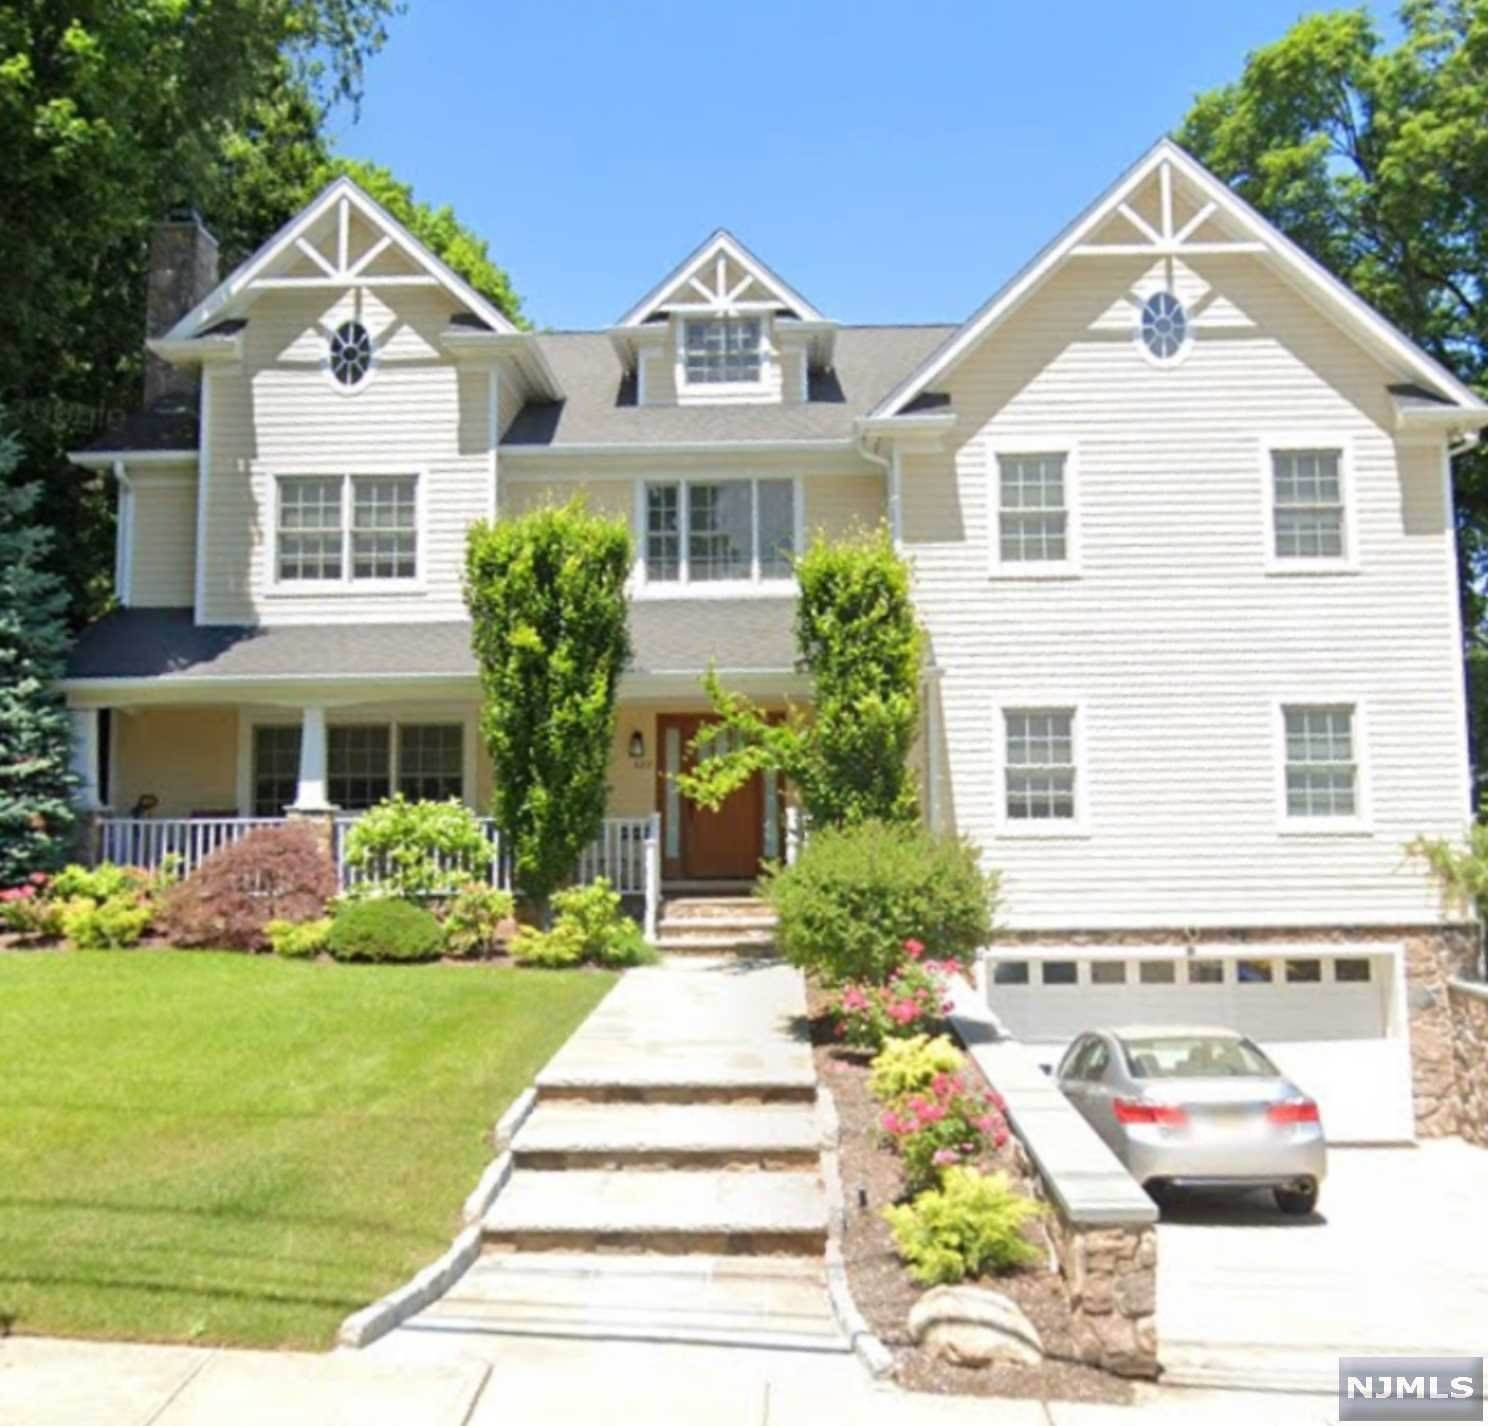 Single Family Home for Sale at 327 Warwick Avenue Teaneck, New Jersey, 07666 United States